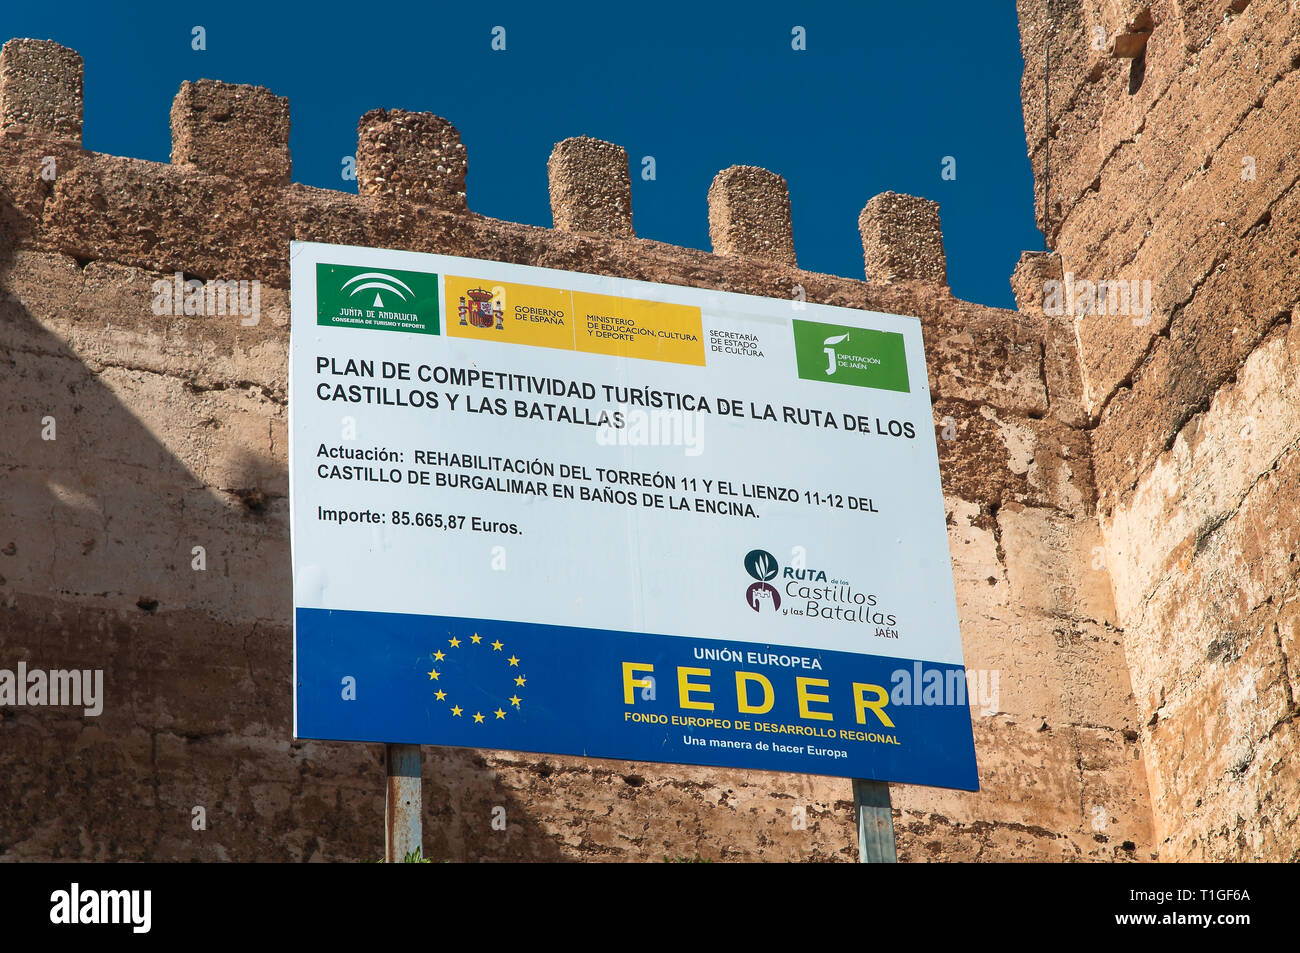 Poster of the European Union. ERDF (European Fund for Regional Development). Castle of Burgalimar (10th century). Baños de la Encina. Jaen province. R - Stock Image